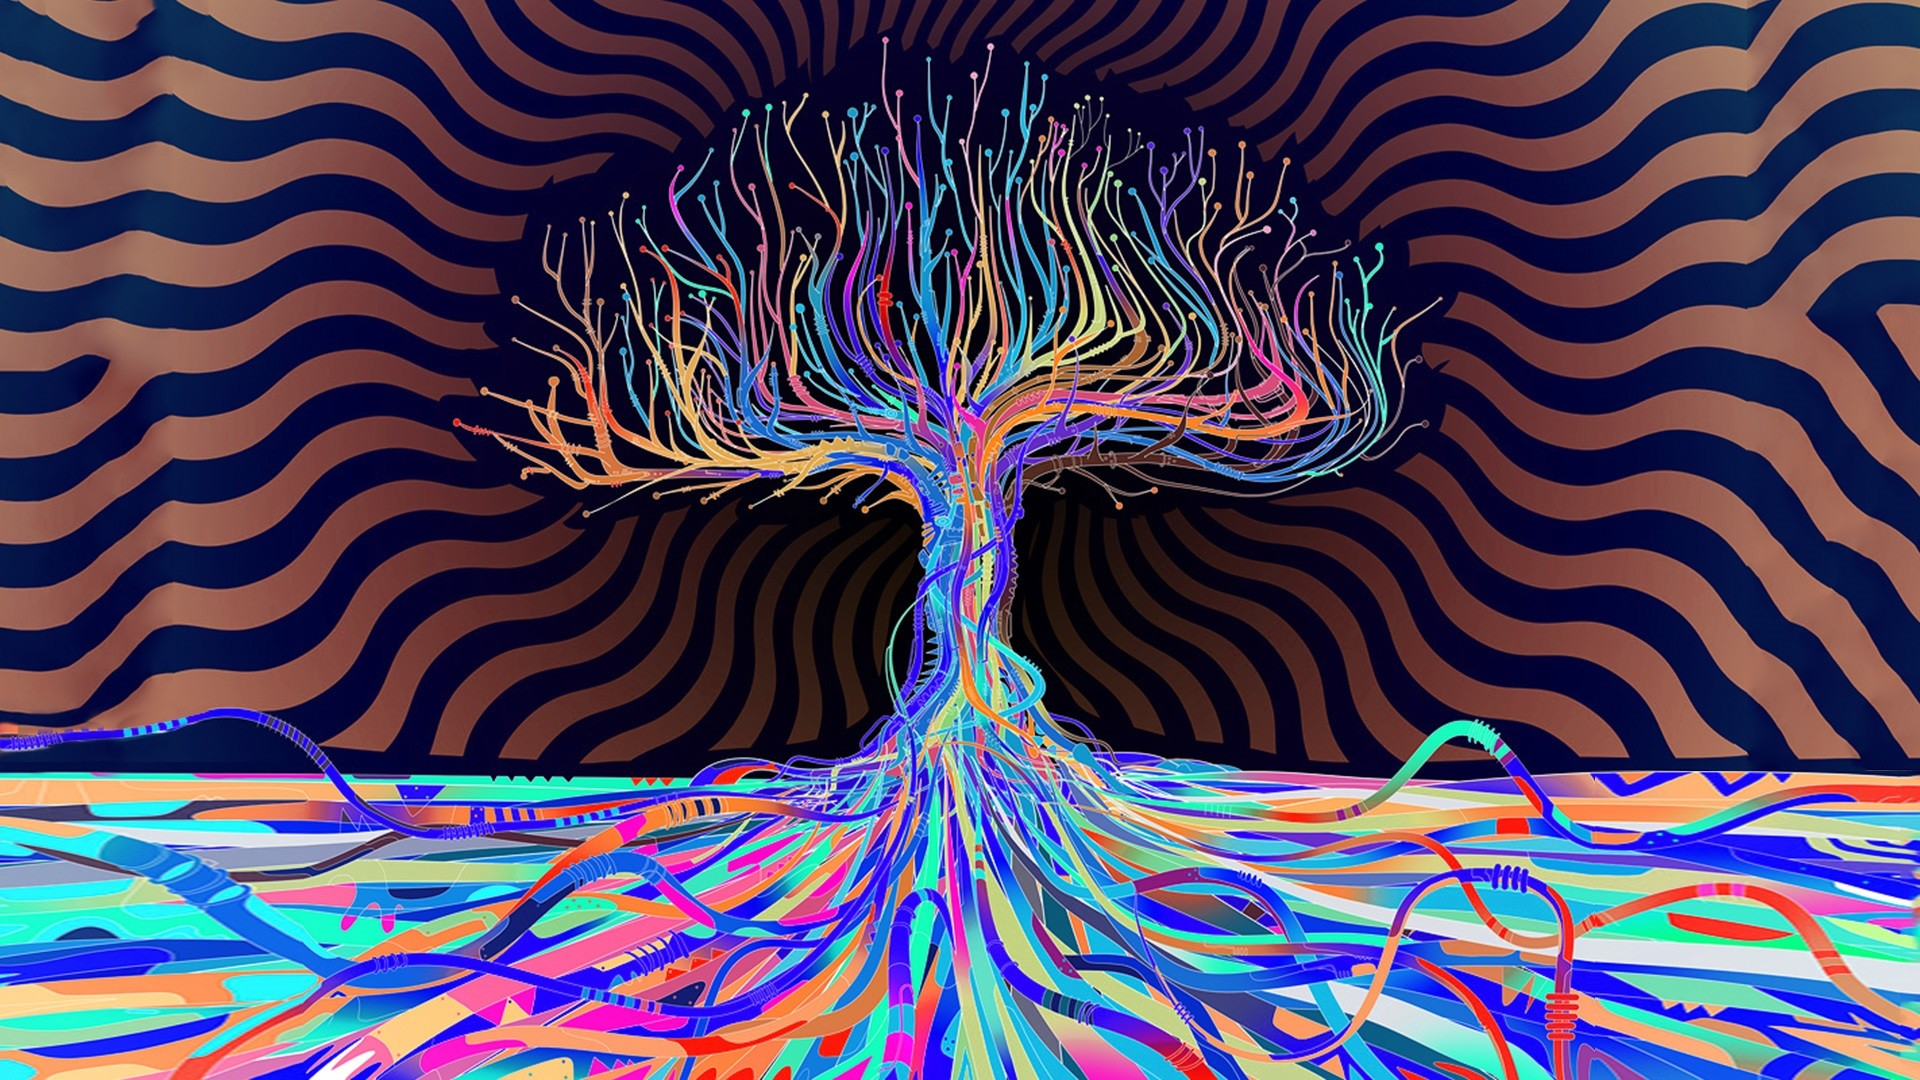 1920x1080 Psychedelic HD Wallpapers Wallpaper | HD Wallpapers | Pinterest |  Psychedelic, Hd wallpaper and Wallpaper